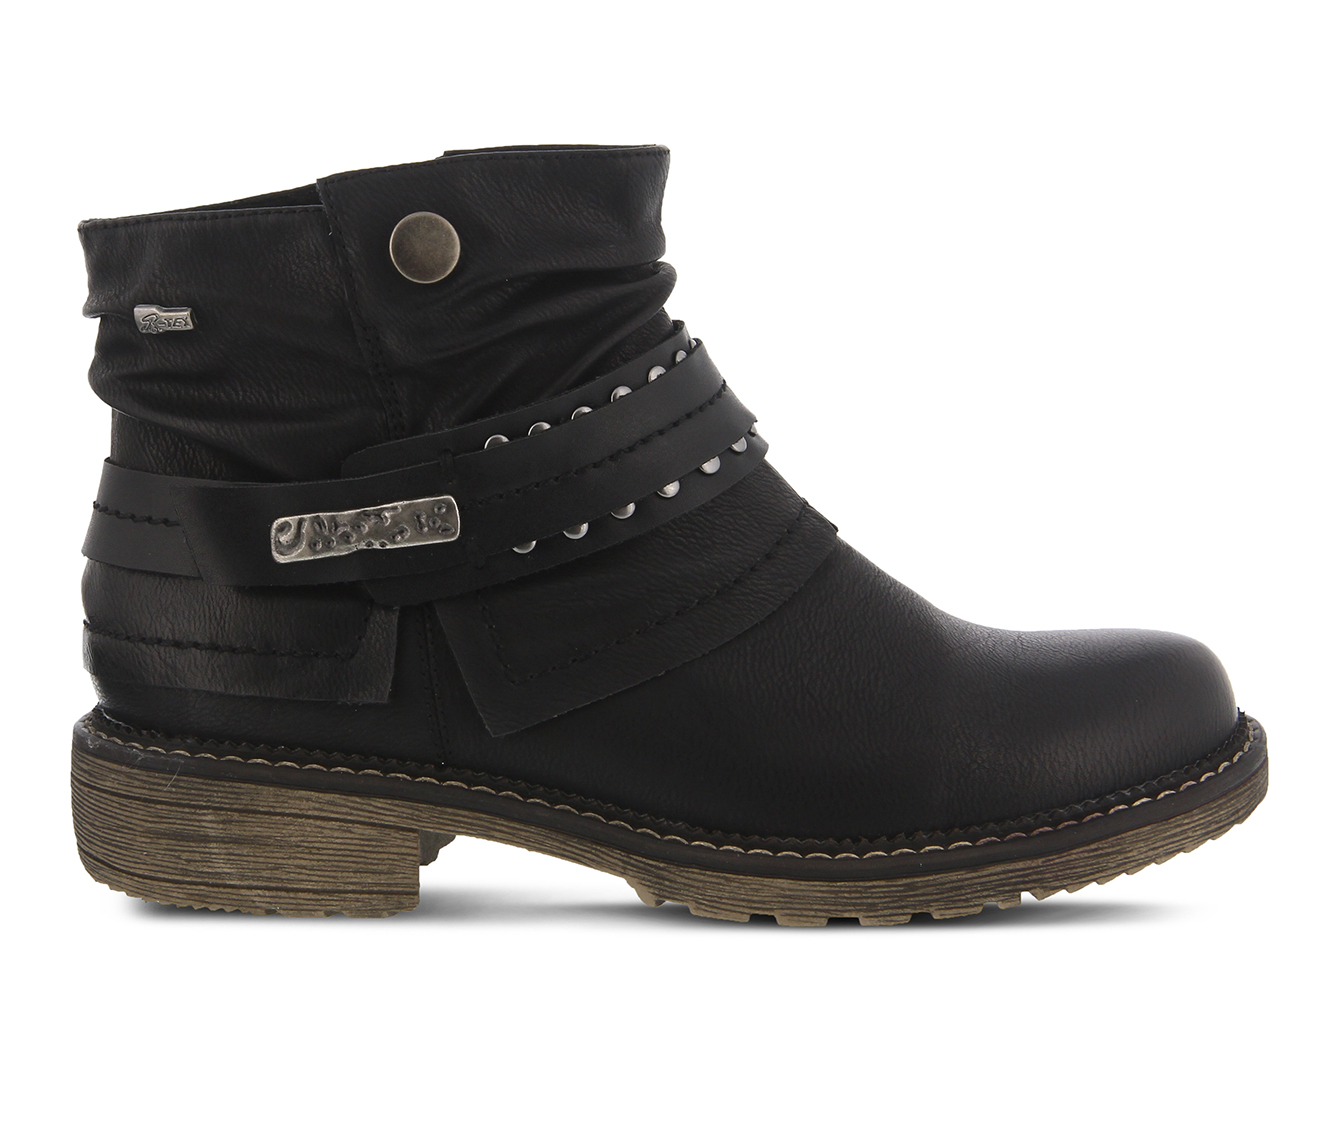 SPRING STEP Murna Women's Boots (Black Faux Leather)